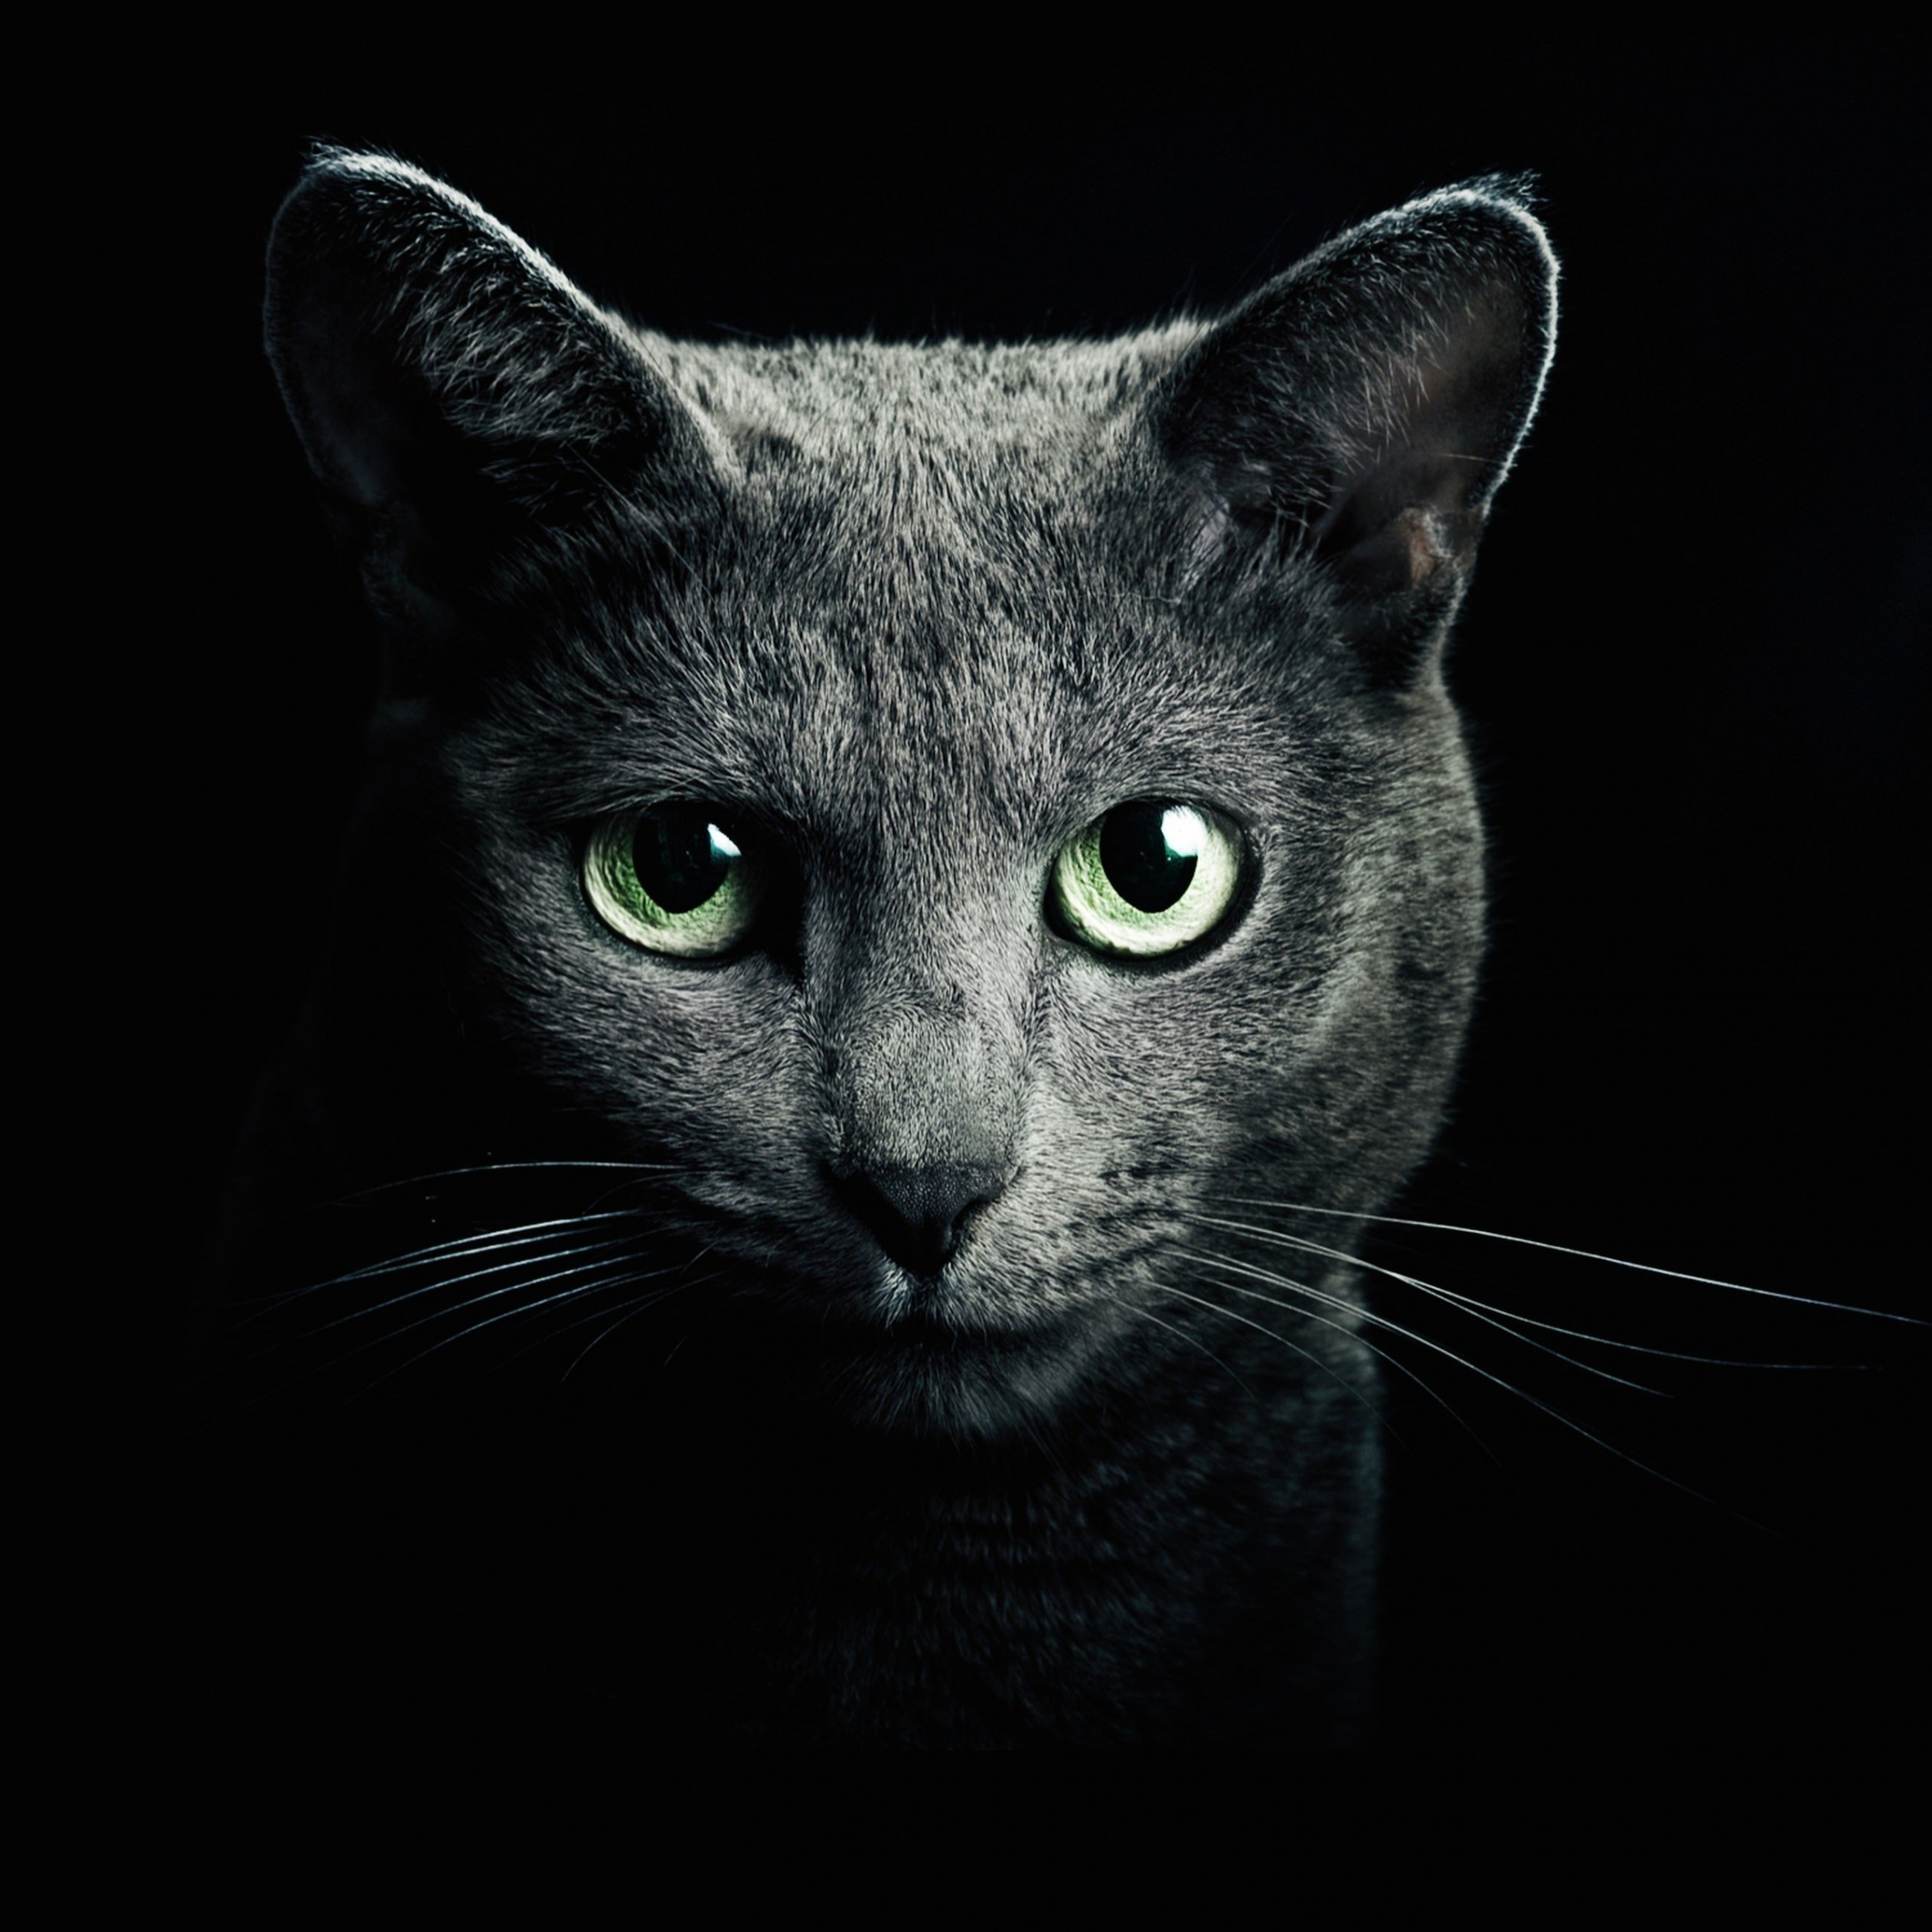 Russian Blue Cat Wallpaper for Apple iPad Air